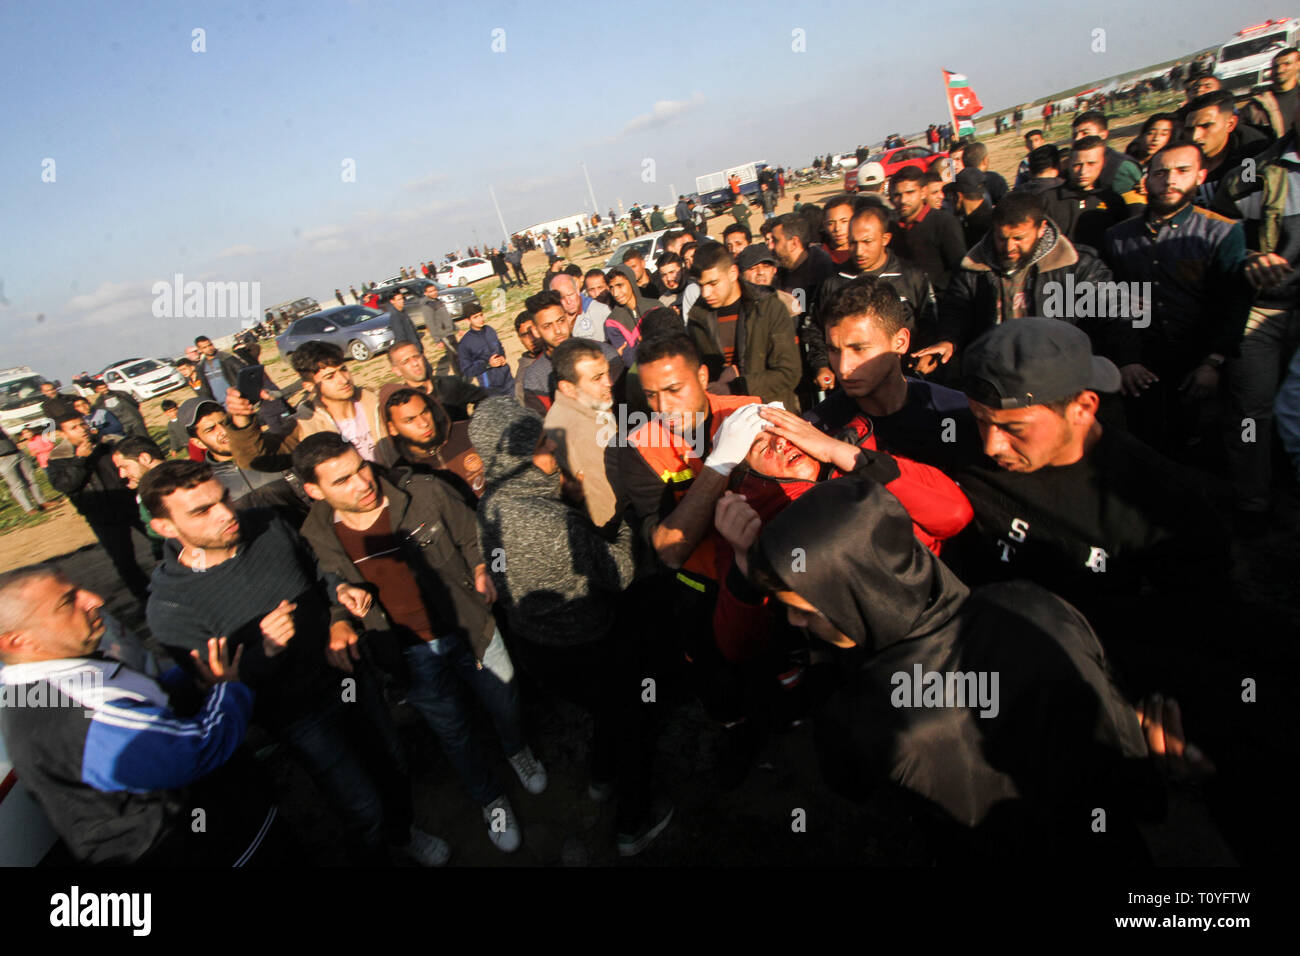 March 22, 2019 - Gaza, 22th March 2019. A number of Palestinian demonstrators are injured in clashes with the Israeli army in the Malika district on the east of Gaza City during this Friday 51st Great March of Return rally. Thousands of demonstrators had gathered at several points on the Gaza-Israeli borders with some hurling rocks and burning tires, and with Israeli troops firing live ammunition, rubber-coated steel bullets, and tear gas at protesters. According to the Gaza Health Ministry, 30 Palestinians were shot and injured by Israeli live fire, while dozens of others suffered from tear-g Stock Photo